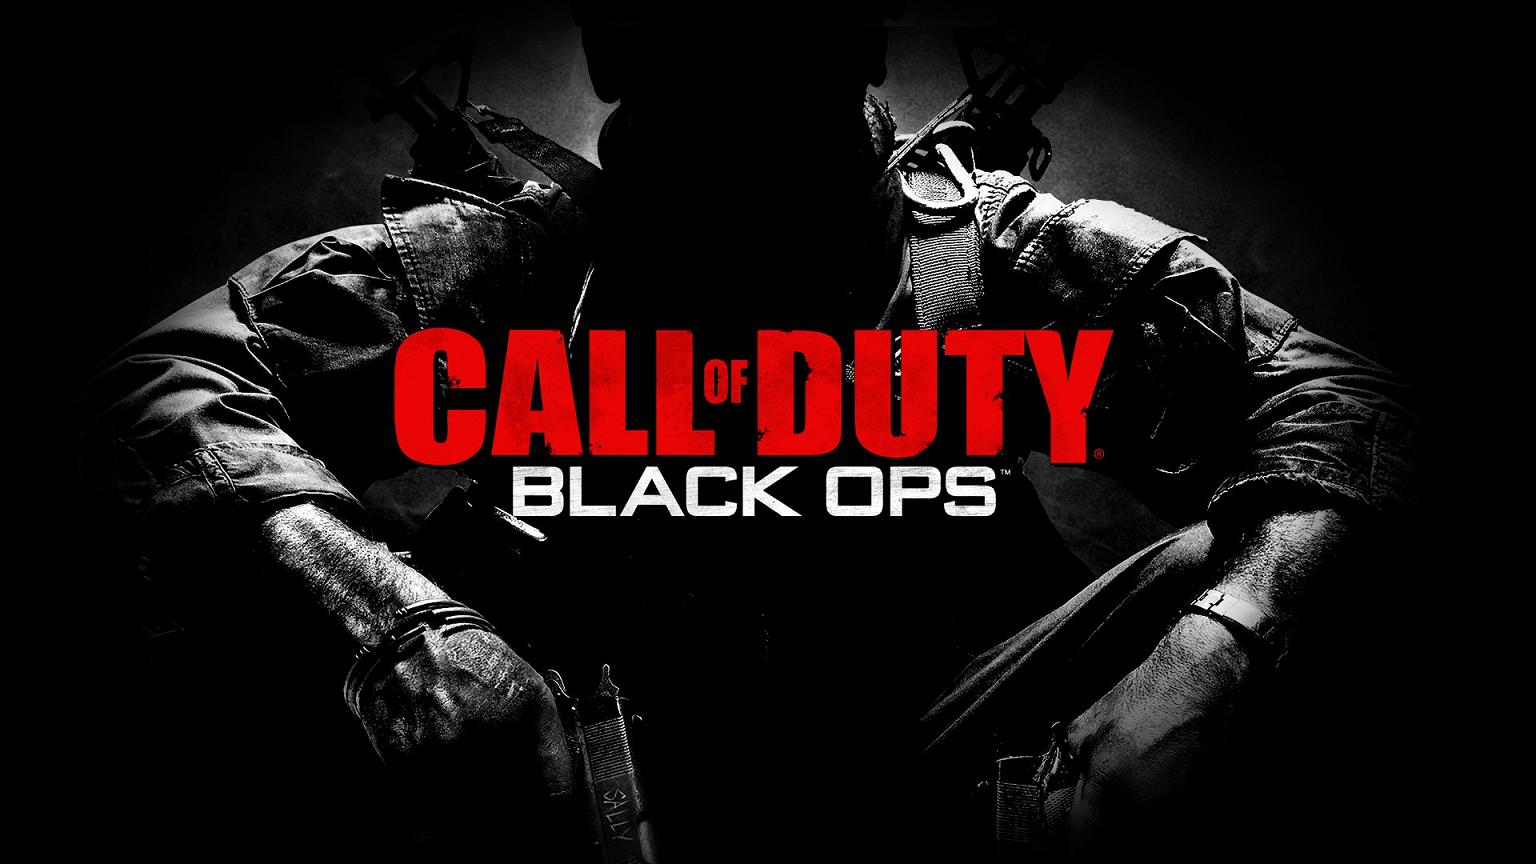 Call Of Duty Special Edition Animated Wallpaper Download